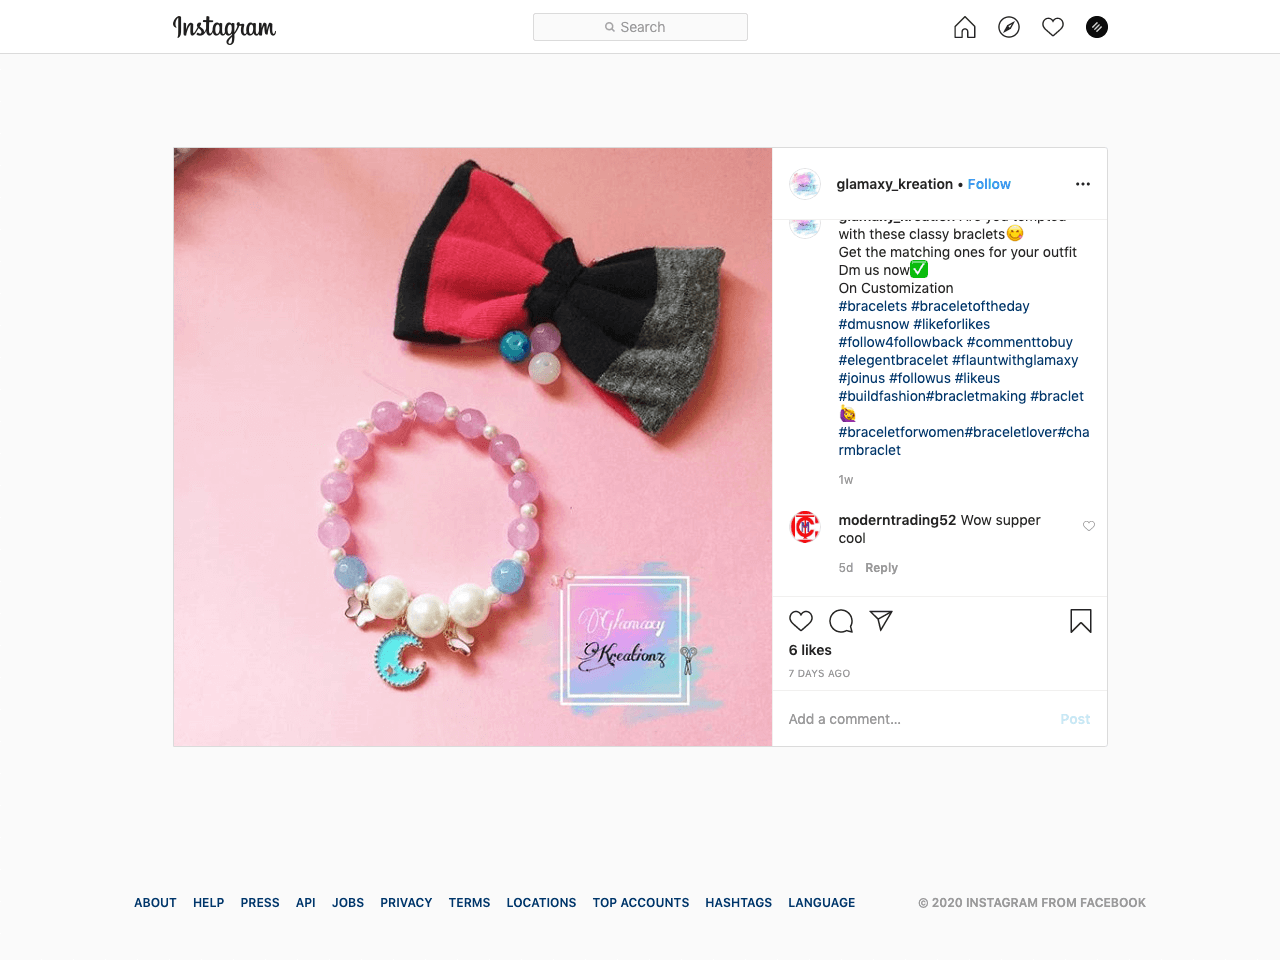 Using DMs to connect with buyers when selling handmade exclusive items on Instagram